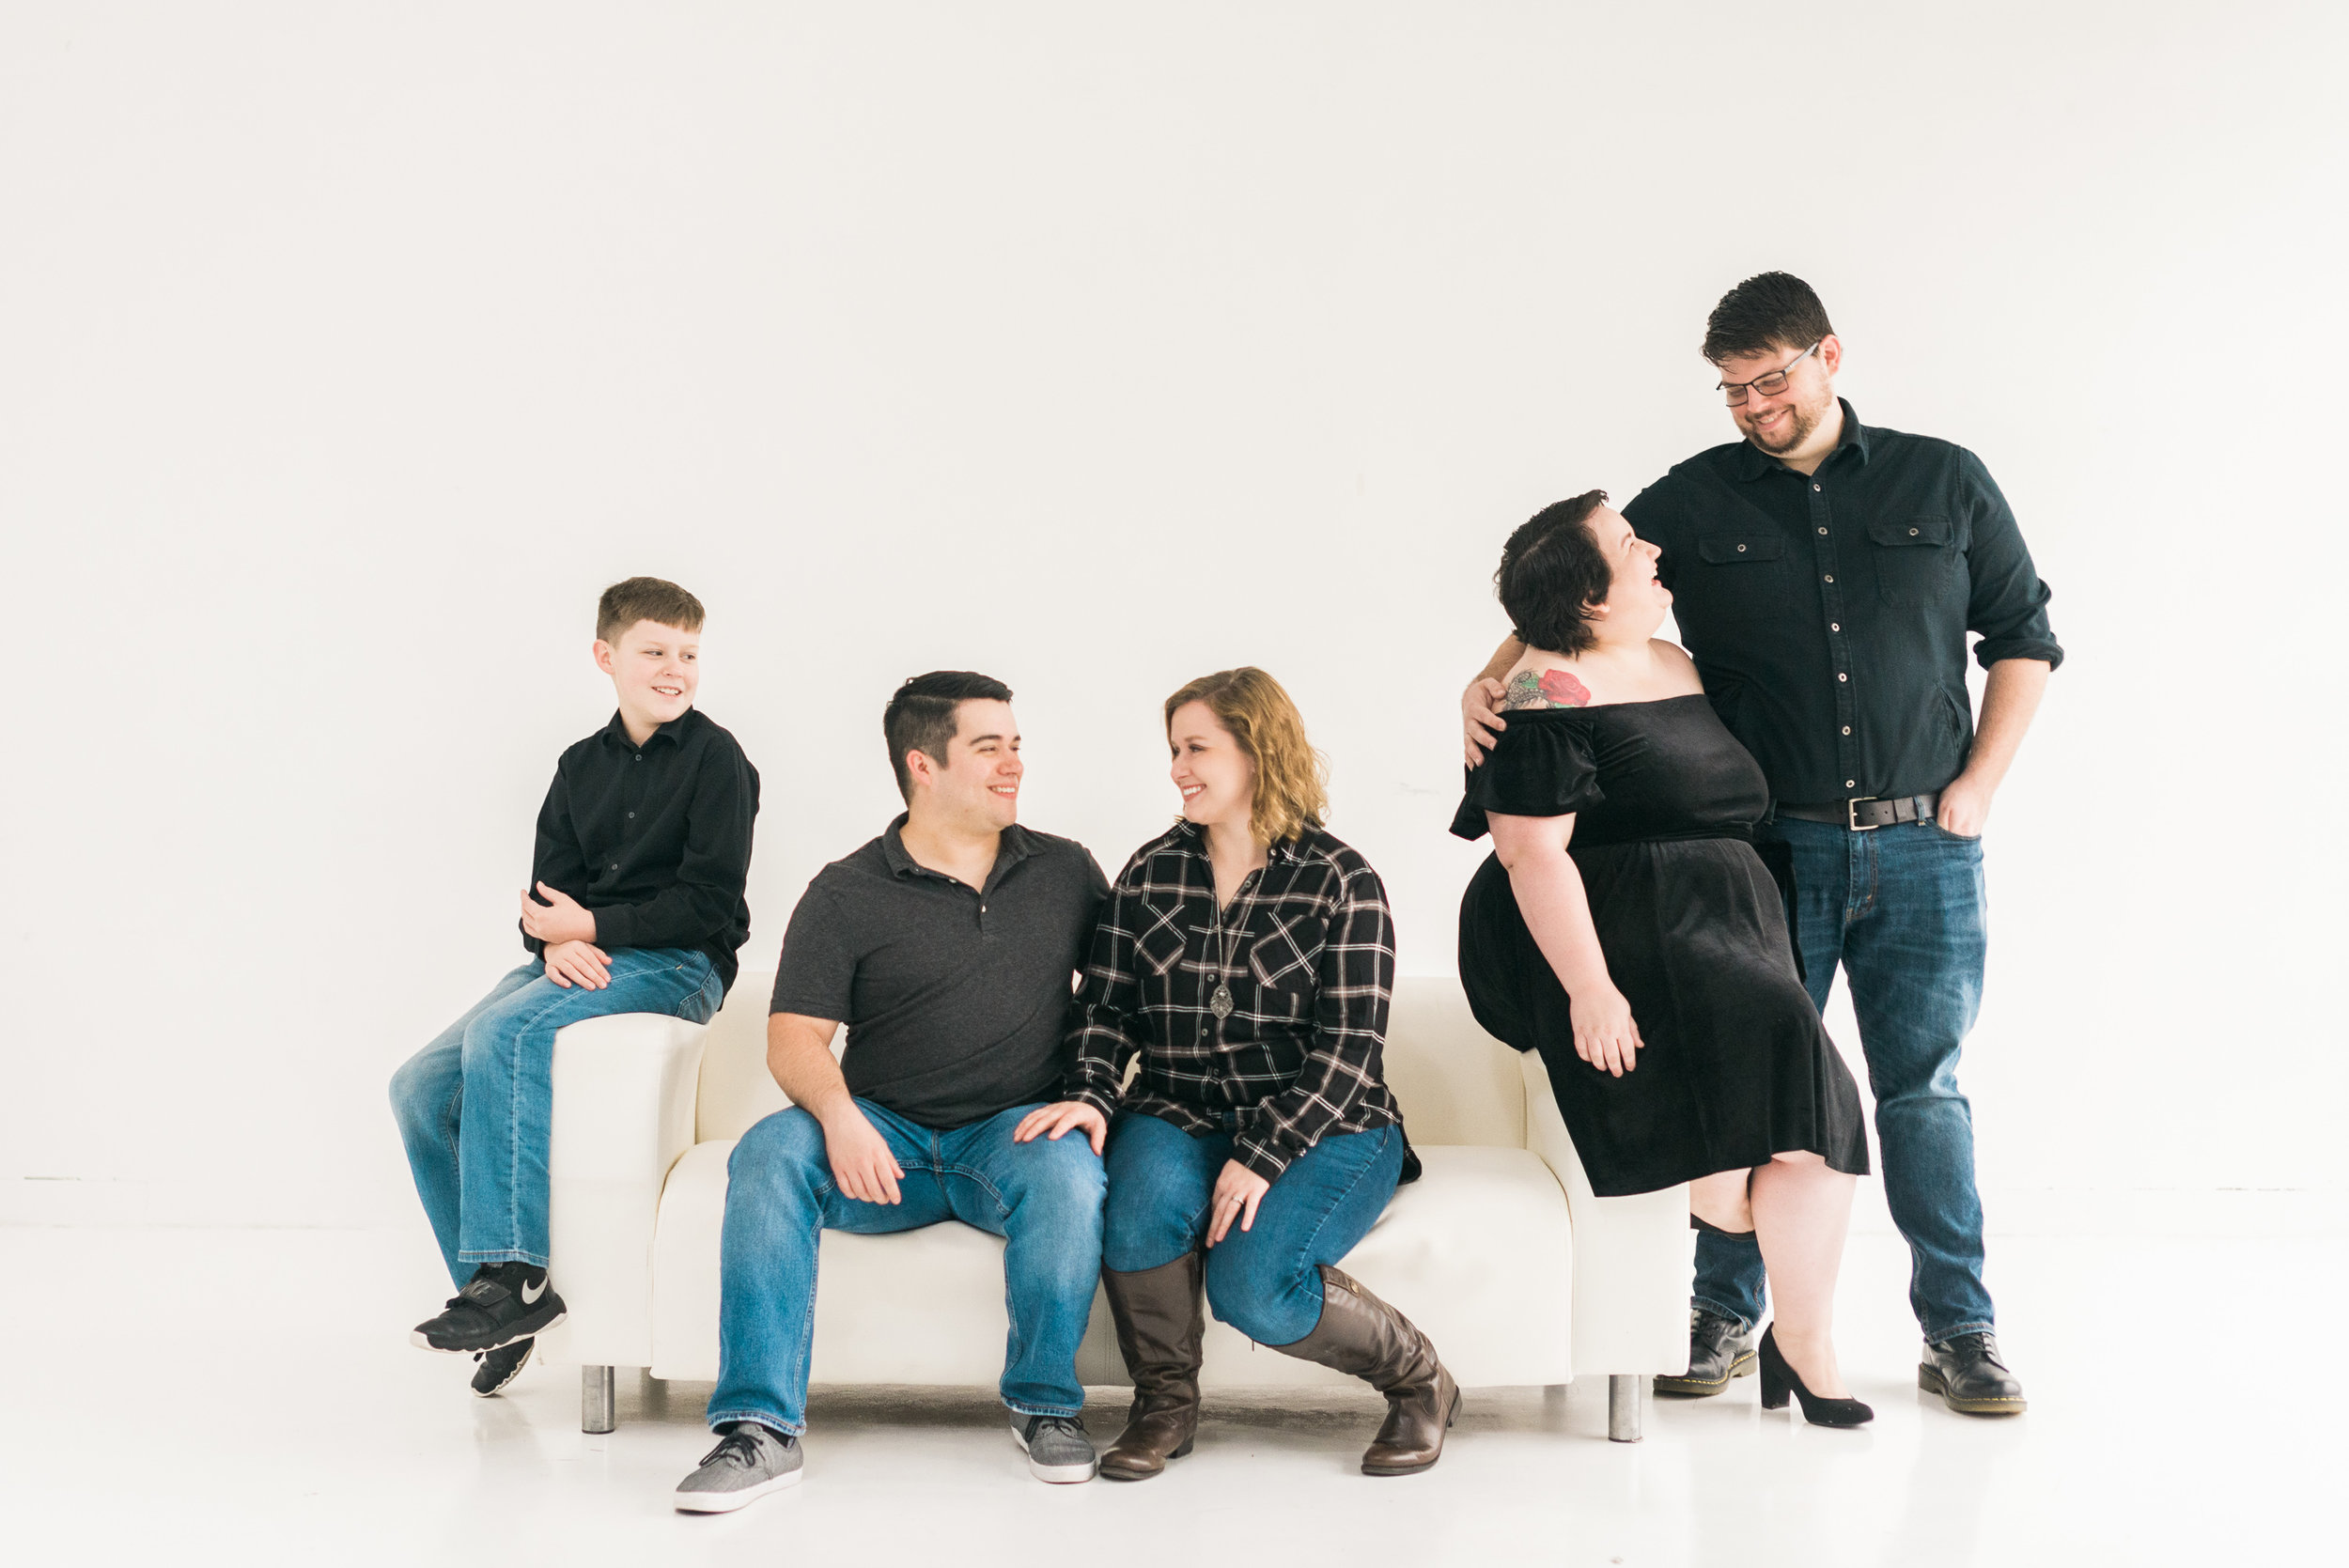 WhiteBackground_HoustonFamilyPortraitPhotographer_ModernStudio_FamilyPhotos8.jpg